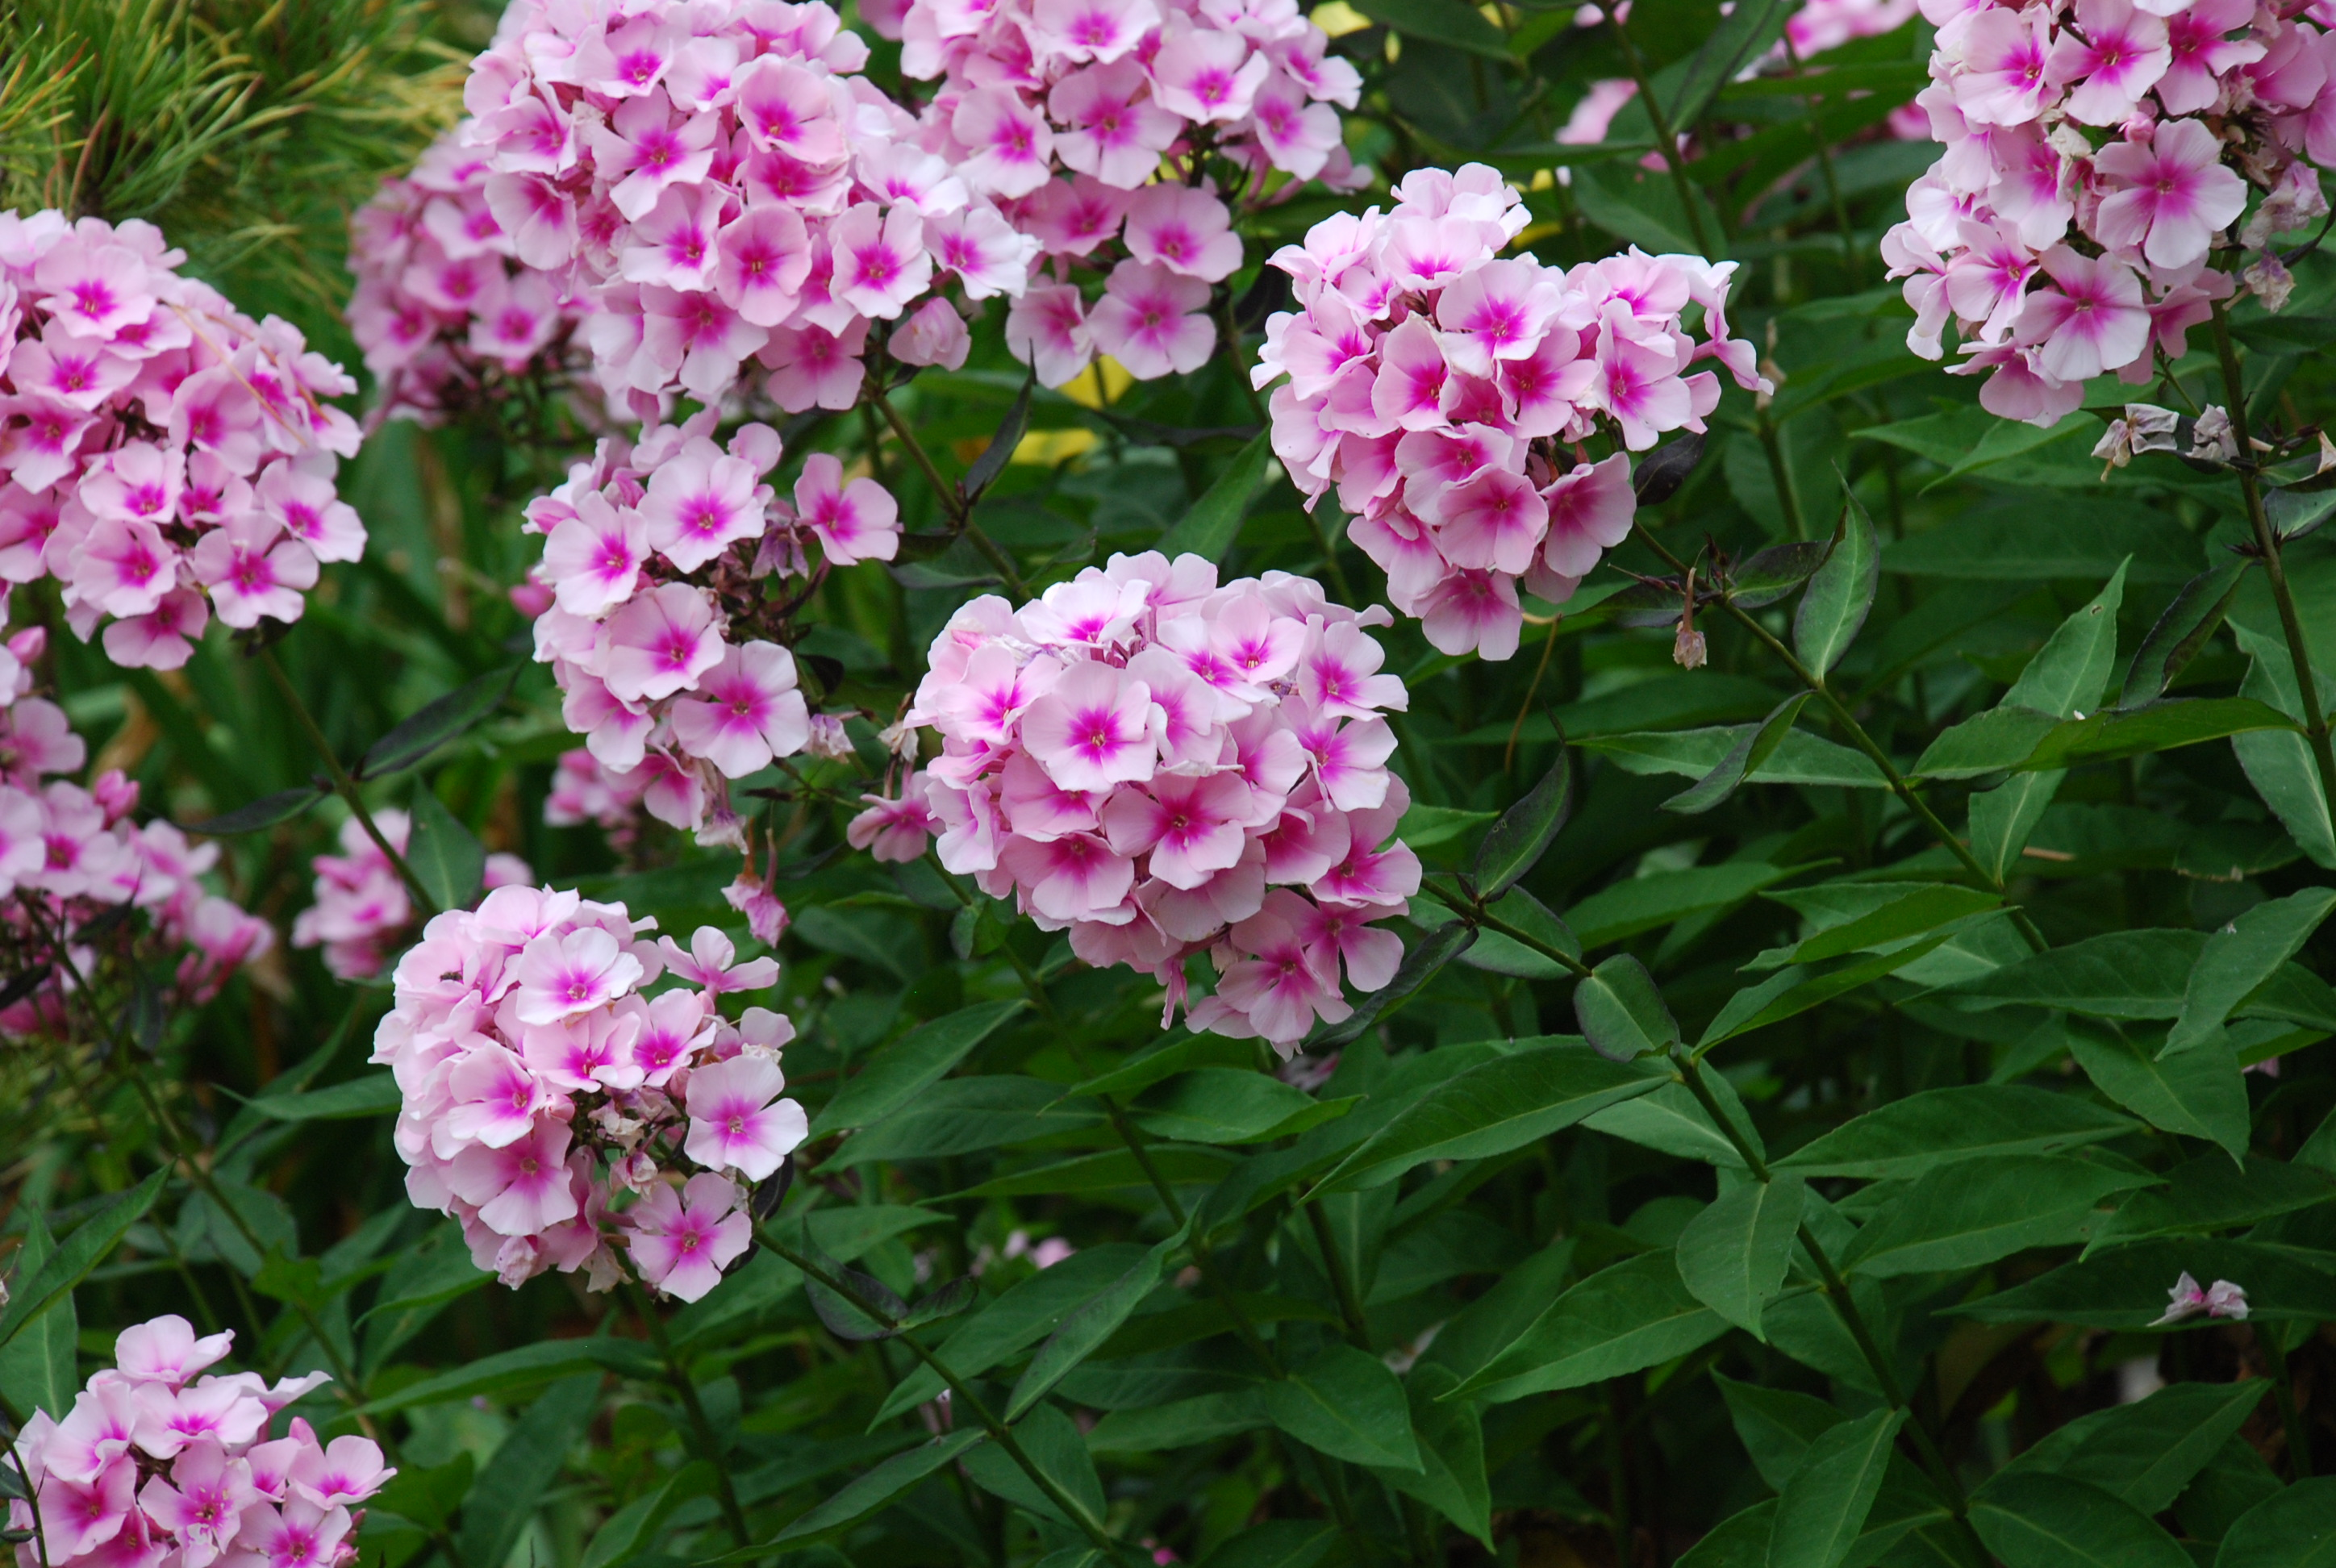 through weather blooms flora sabbath smiles the in things right hues of some tall a degree happy sept middle many garden enjoy phlox